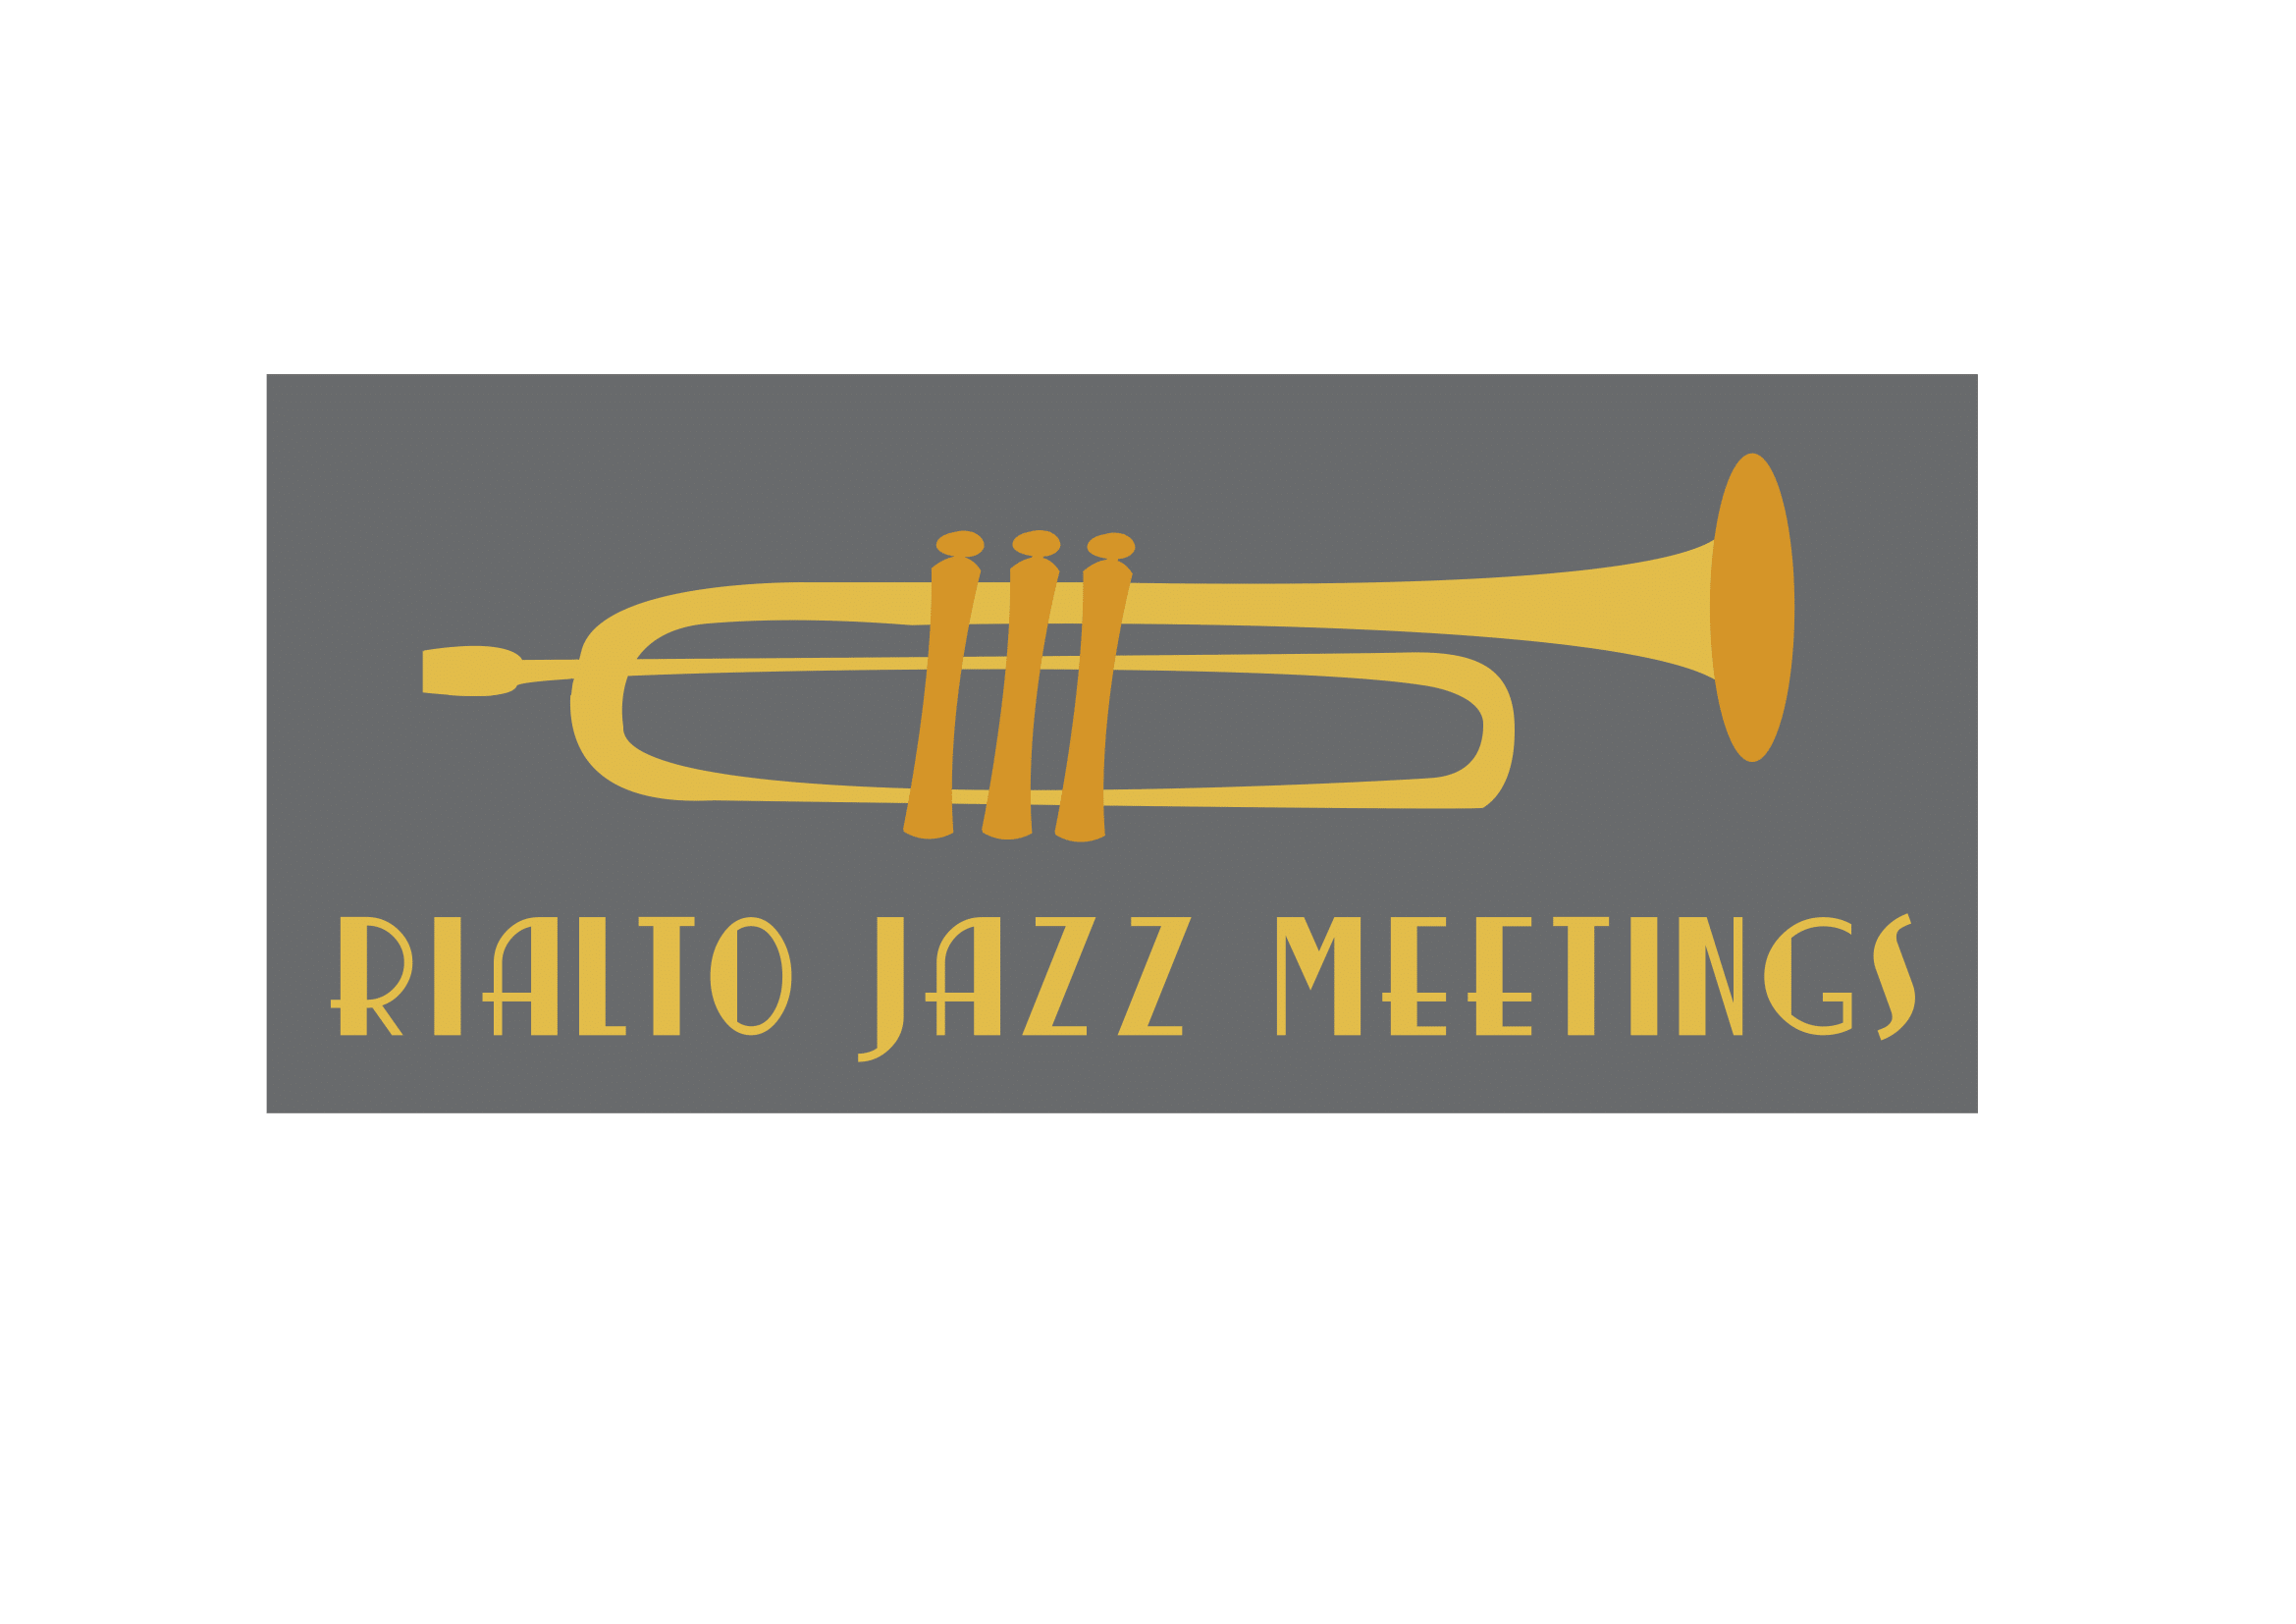 Rialto Jazz Meetings-1